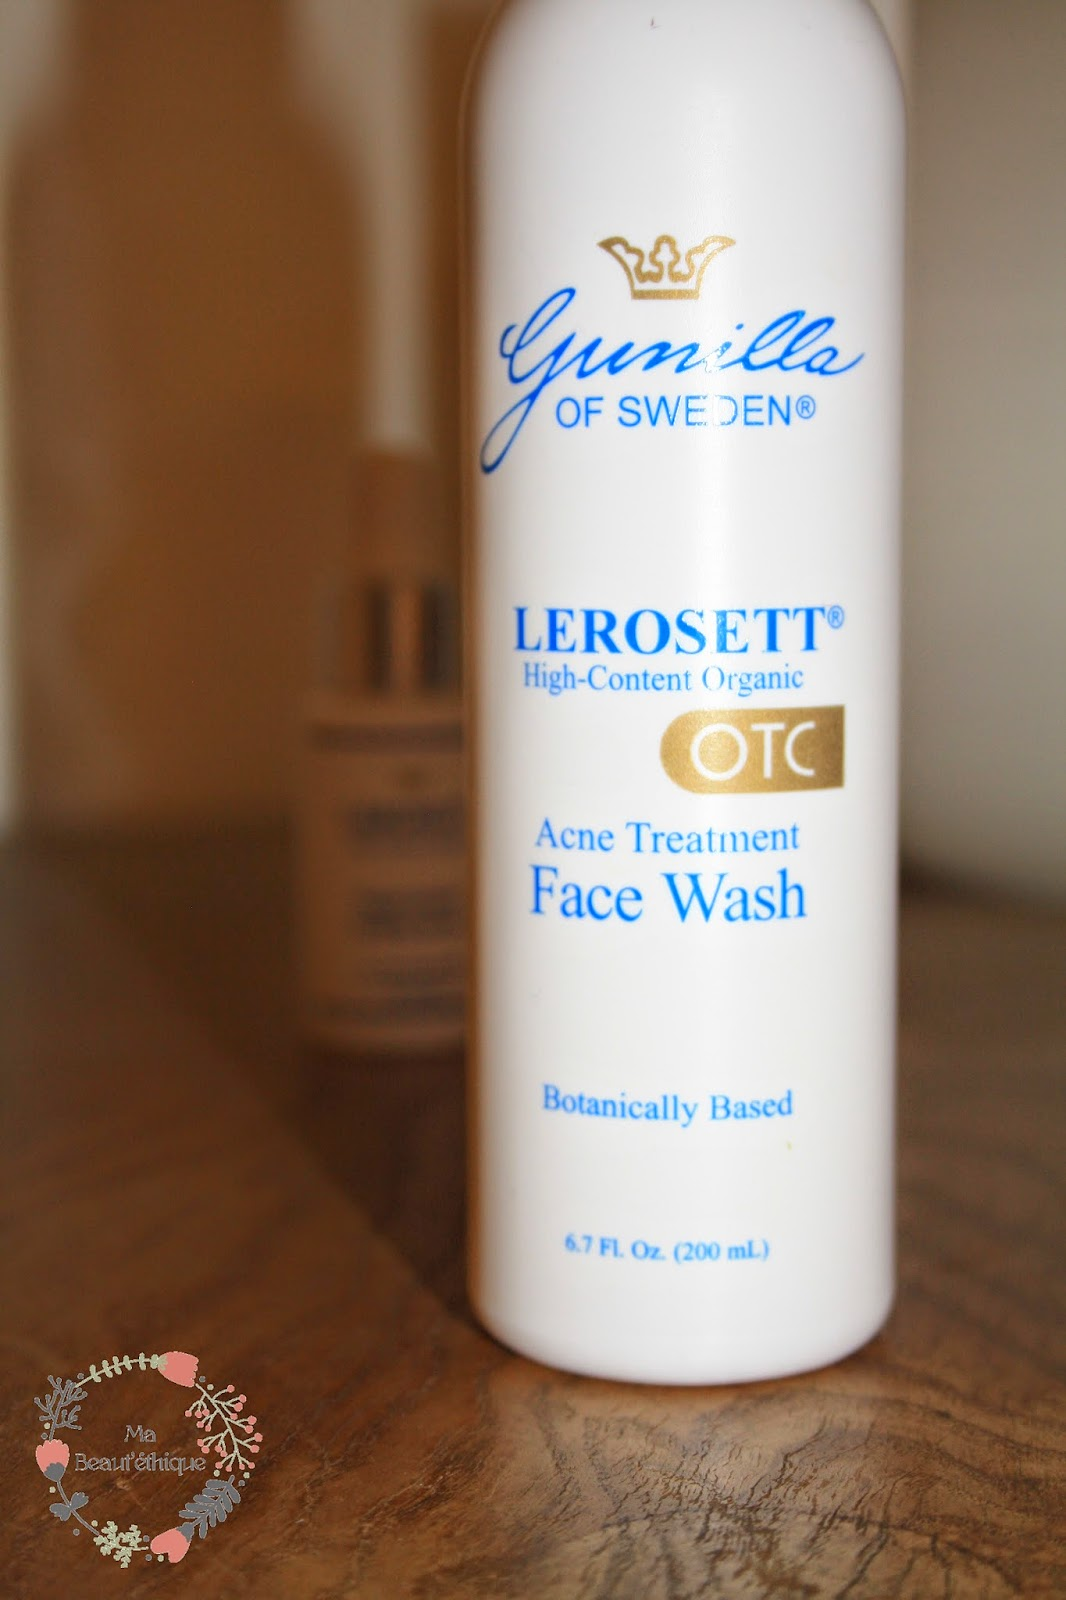 lerosett gunilla of sweden acne organic solution face wash clay mask regenerative healing serum